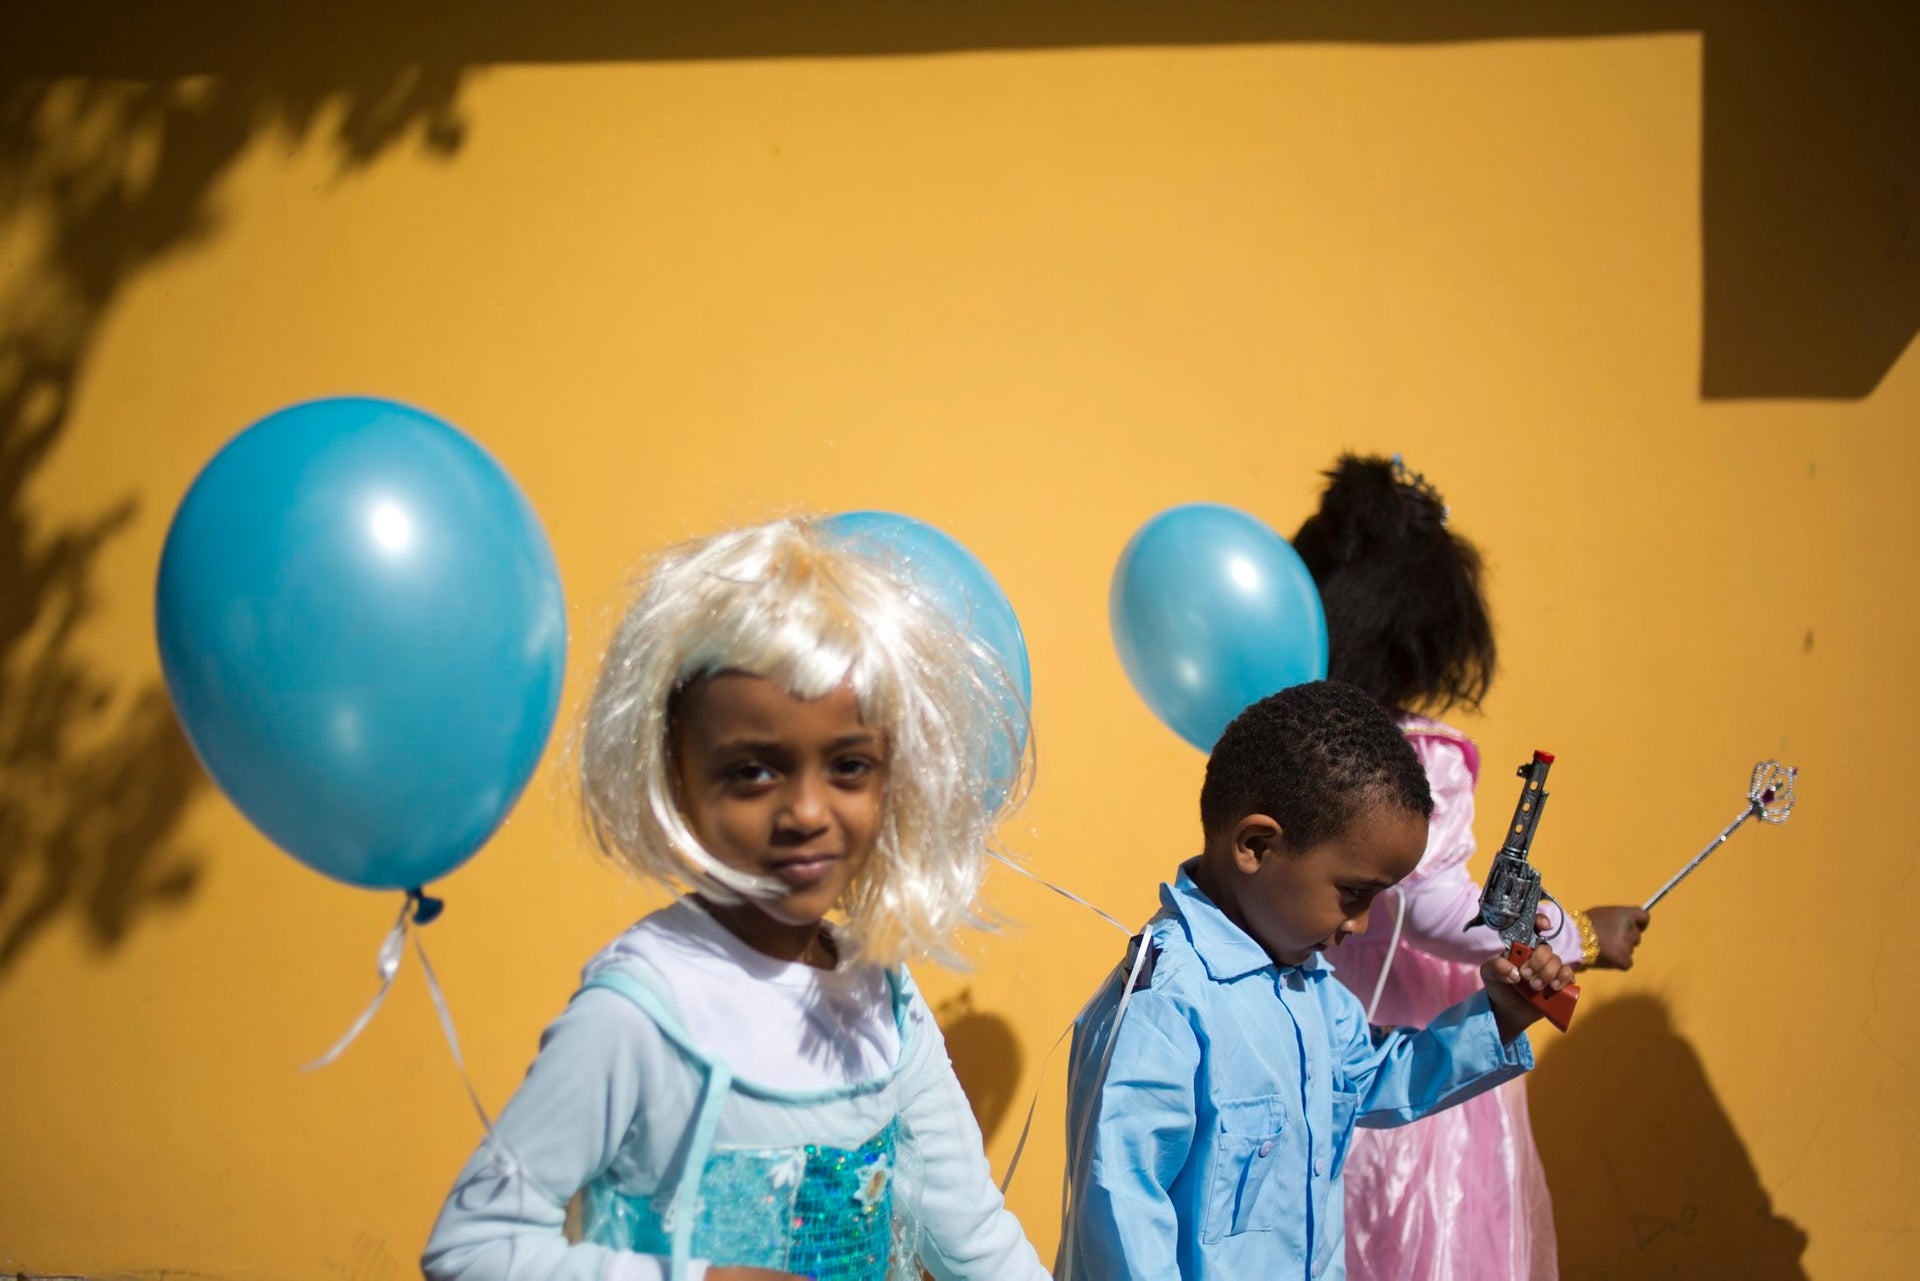 Children of asylum seekers, mostly from Eritrea and Sudan, wear costumes during the Purim parade festival in Tel Aviv, Tuesday, Feb. 27, 2018. The Jewish holiday of Purim commemorates the Jews' salvation from genocide in ancient Persia, as recounted in the Book of Esther, which is read in synagogues. Other customs include: sending food parcels and giving charity, dressing up in masks and costumes, eating a festive meal, and public celebrations.